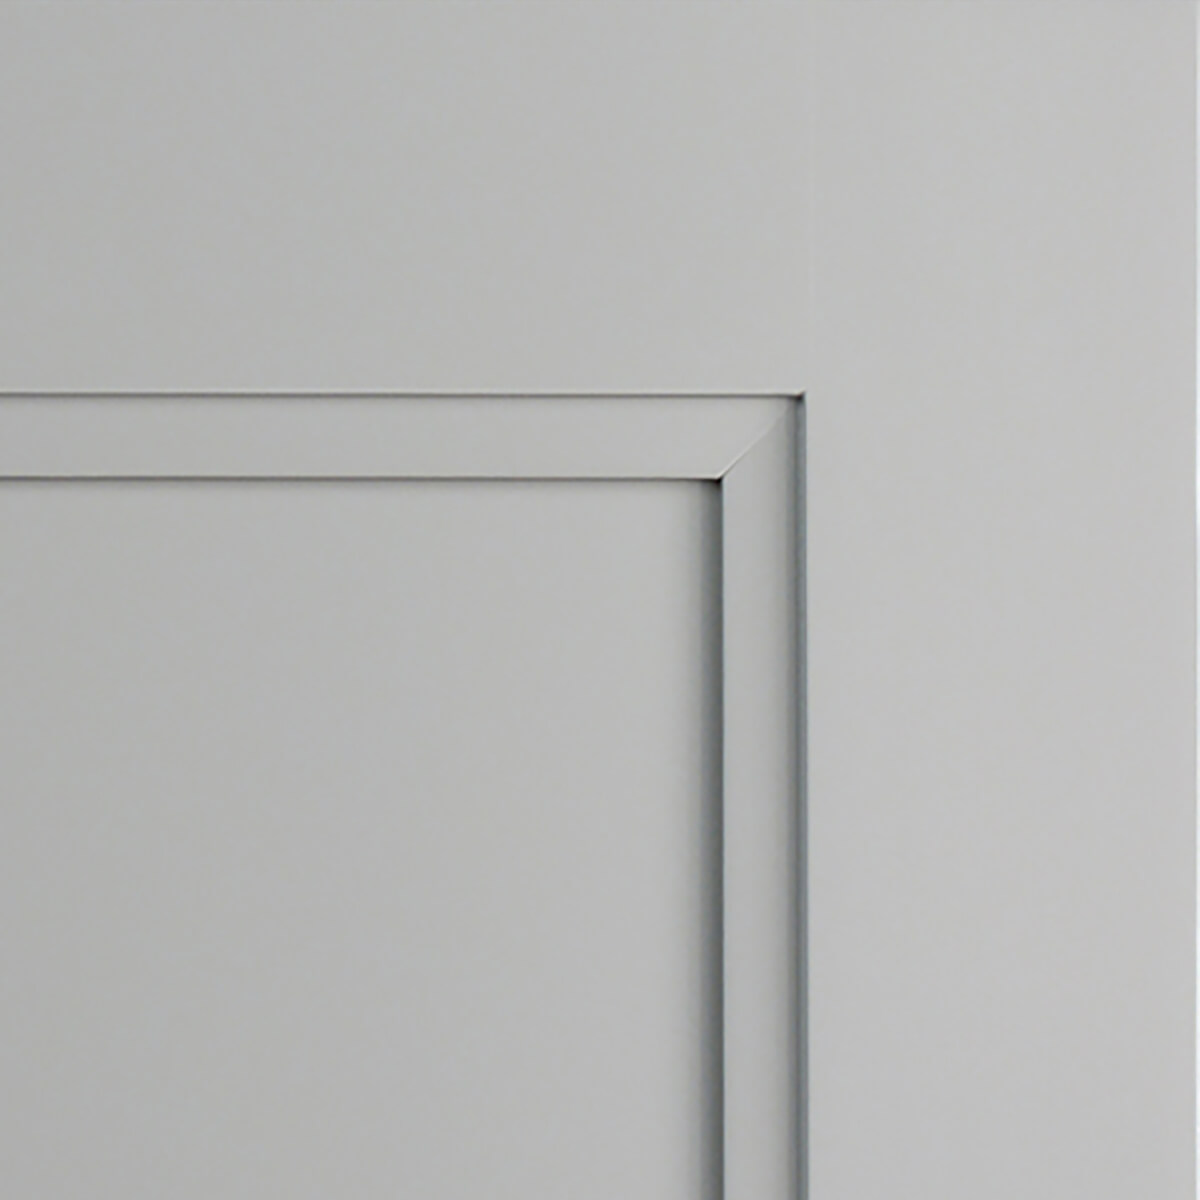 Zinc paint by Dura Supreme in the Dempsey door style